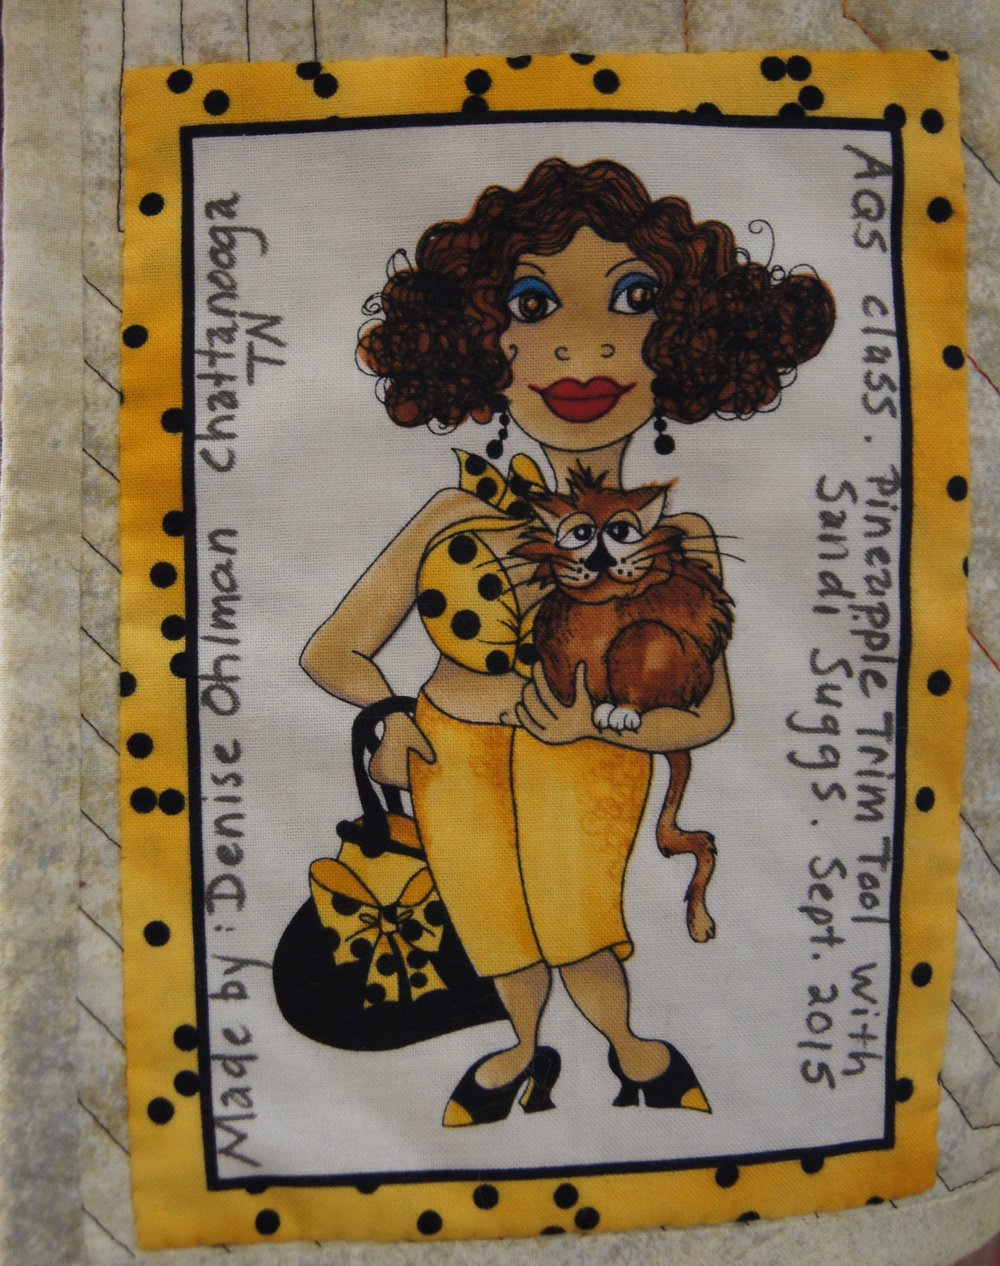 Quilt label by Denise Ohlman